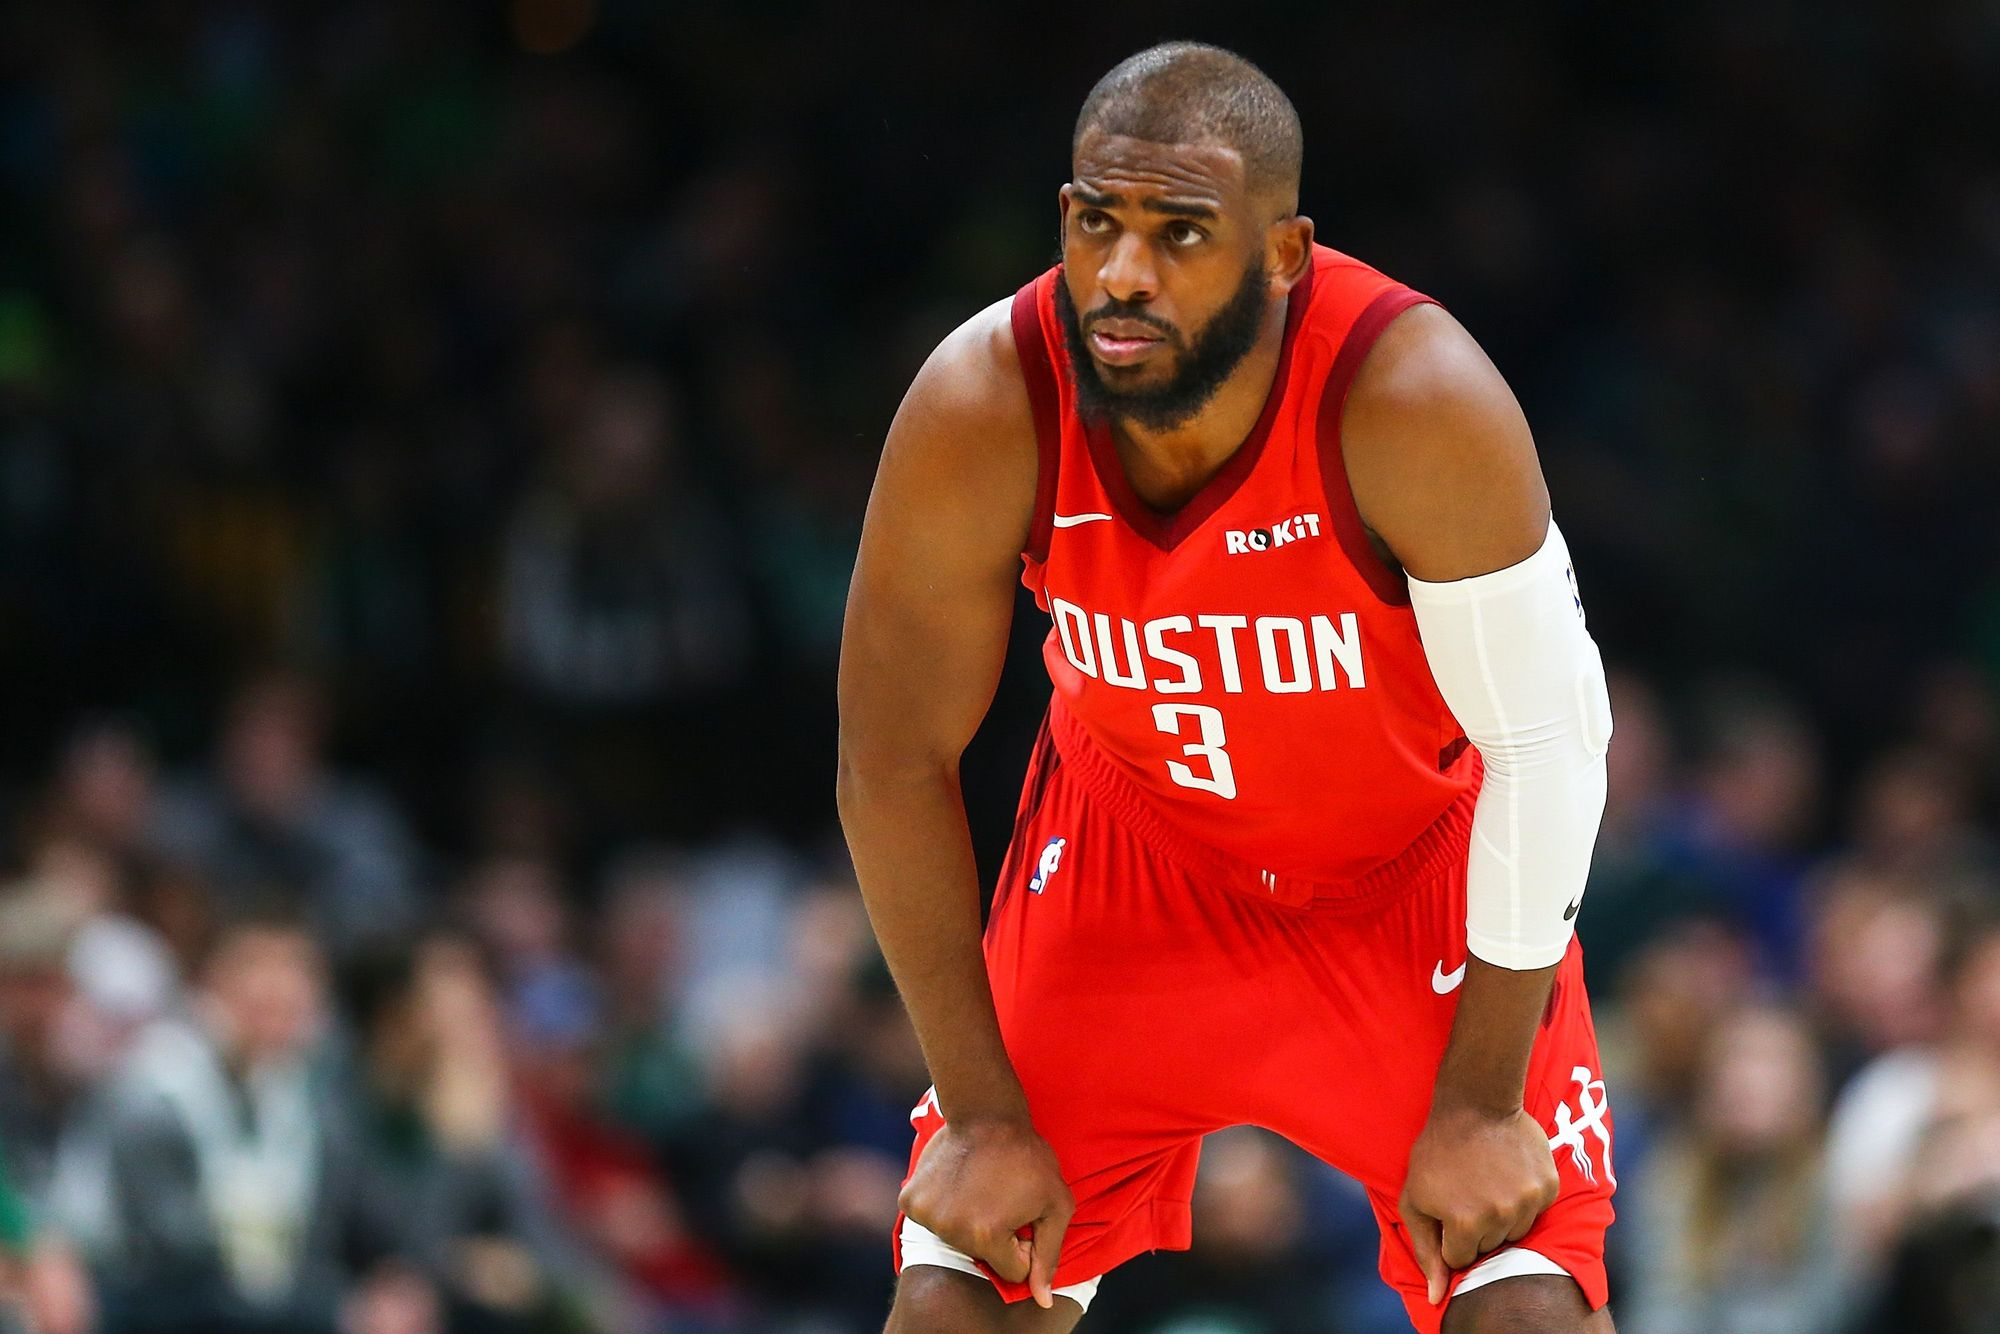 NBA Trade Buzz: Pelicans Receive Trade Offers For Ball And Ingram While OKC Intends To Hold On To CP3